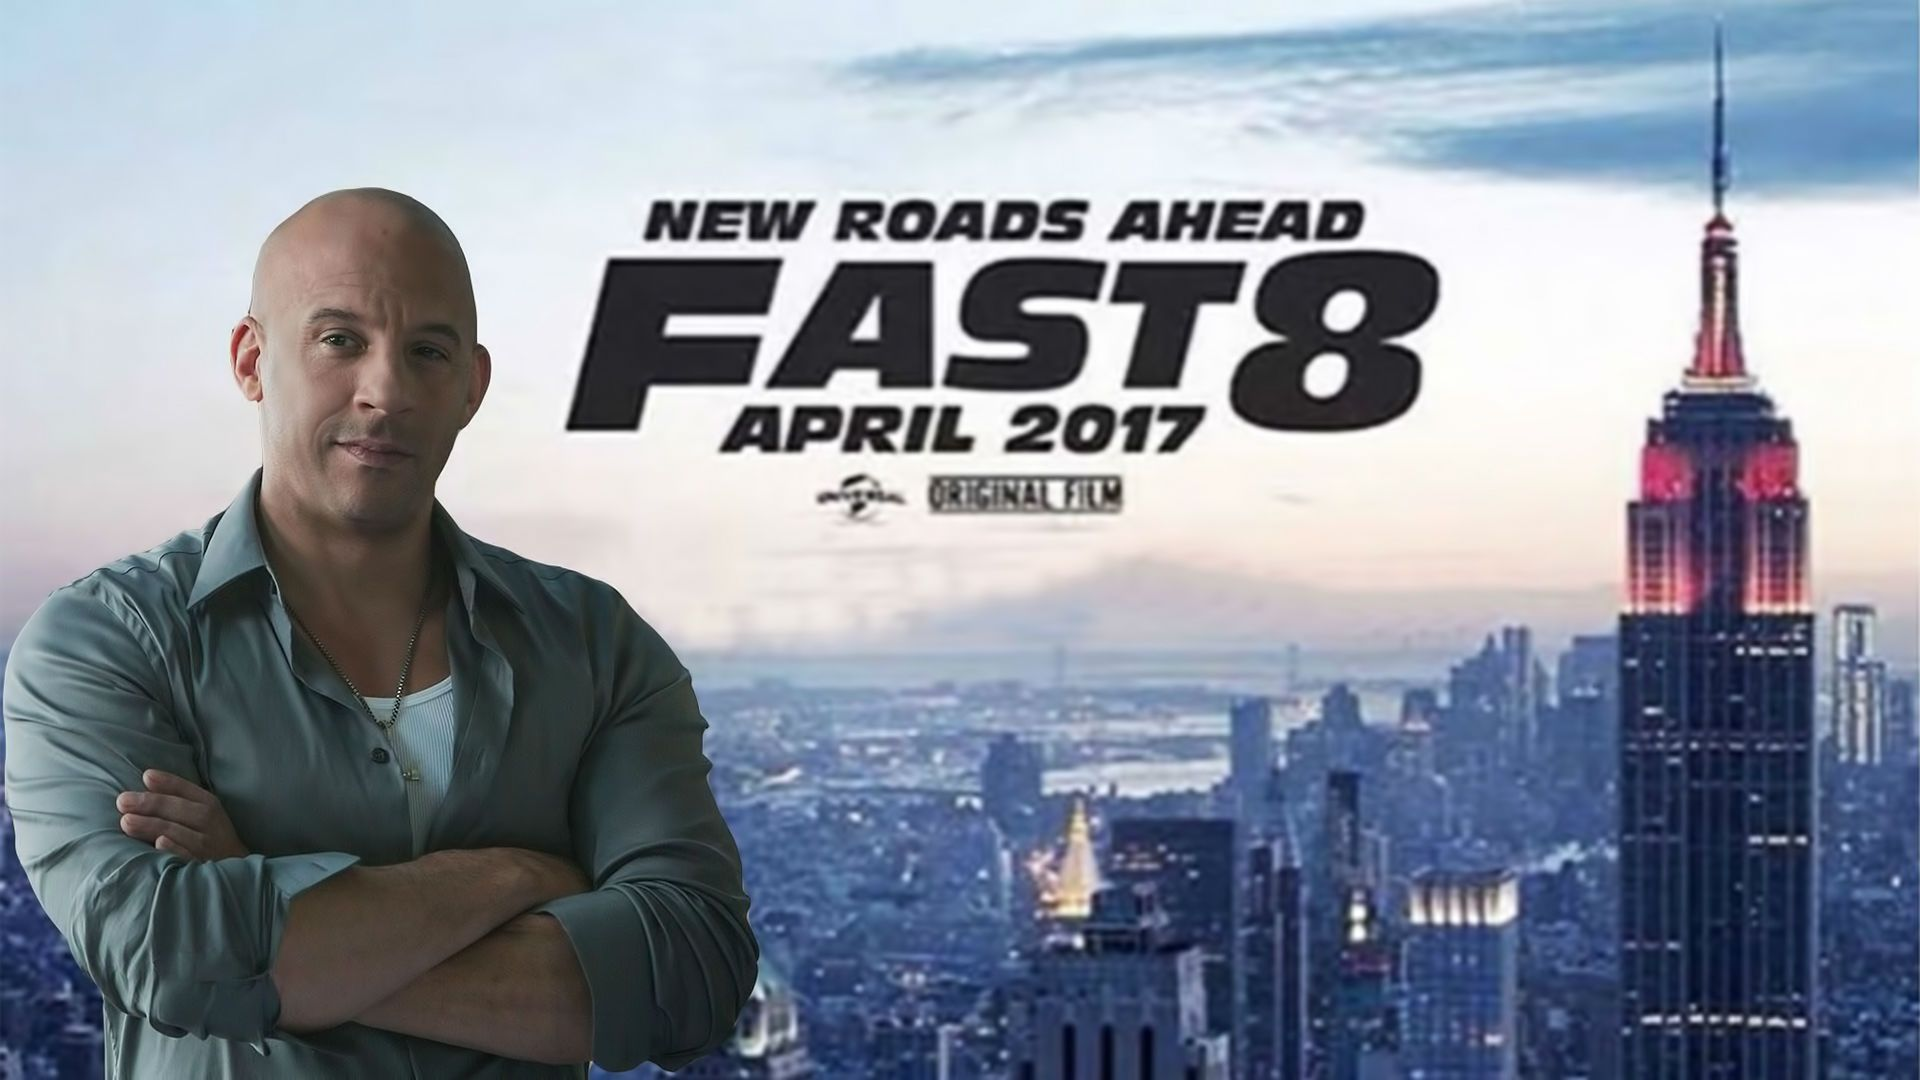 Fast and furious 8 wallpapers find best latest fast and - Furious 8 wallpaper ...